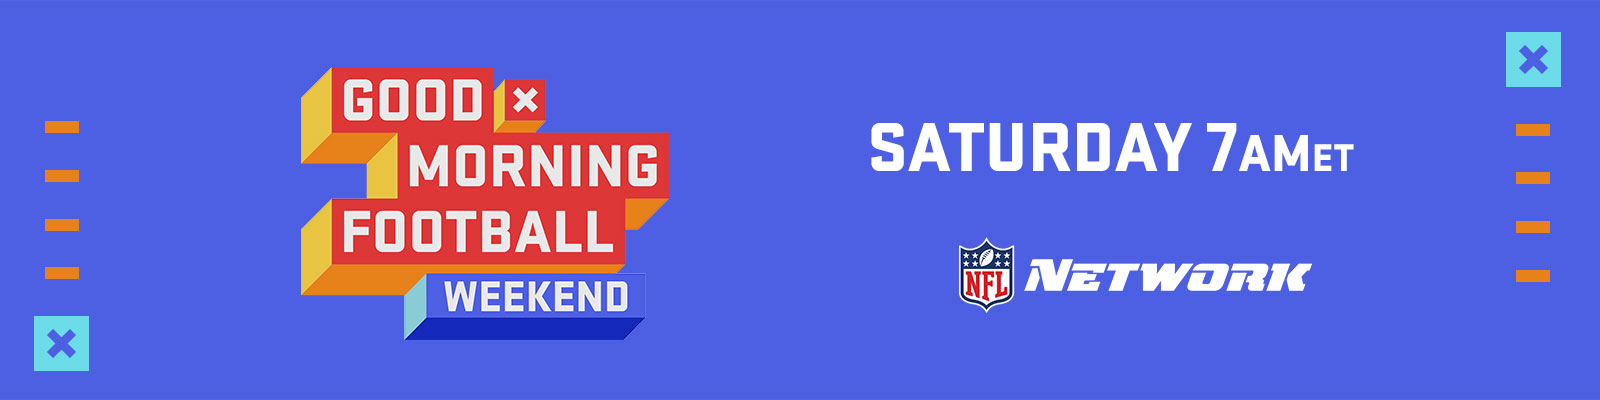 gmfb weekend